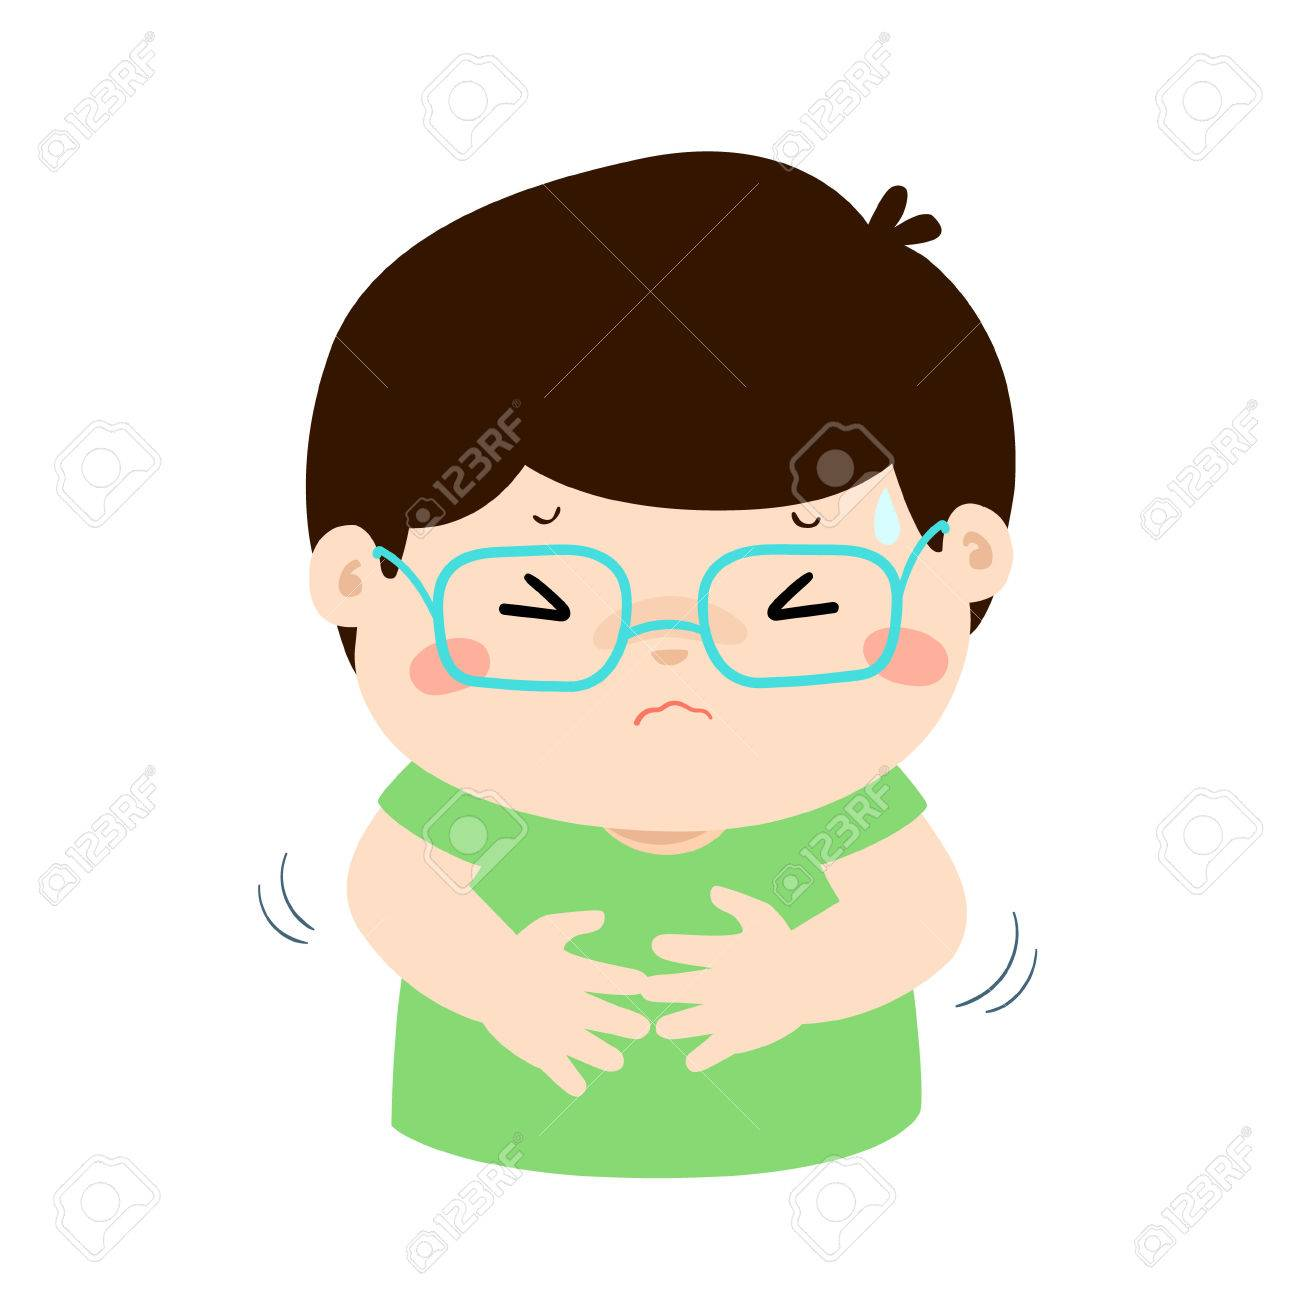 boy having stomach ache cartoon style vector illustration isolated royalty free cliparts vectors and stock illustration image 79017385 boy having stomach ache cartoon style vector illustration isolated